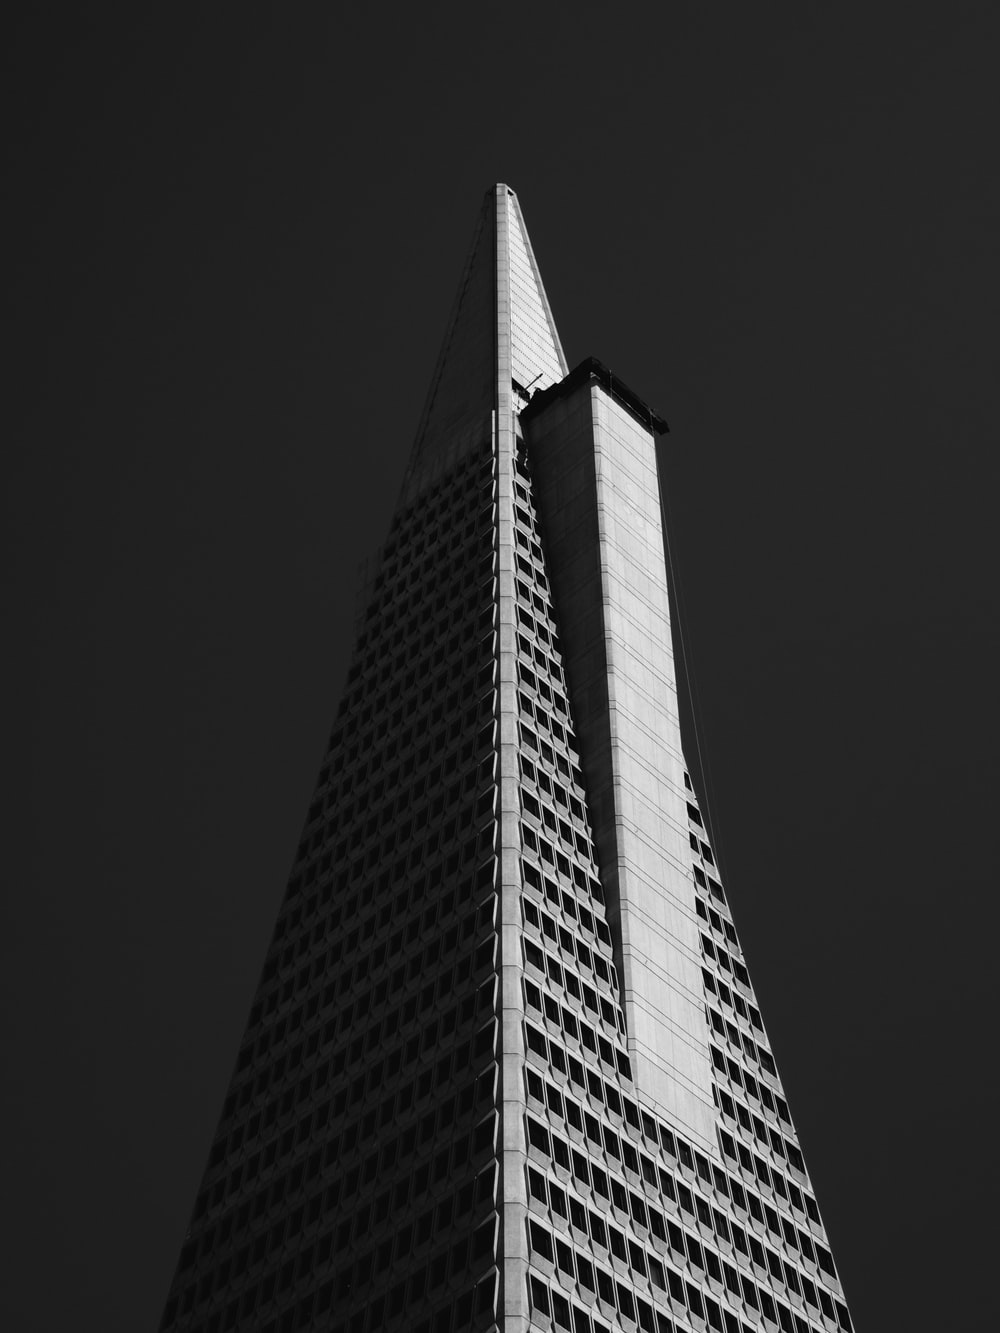 worm's eye-view of building